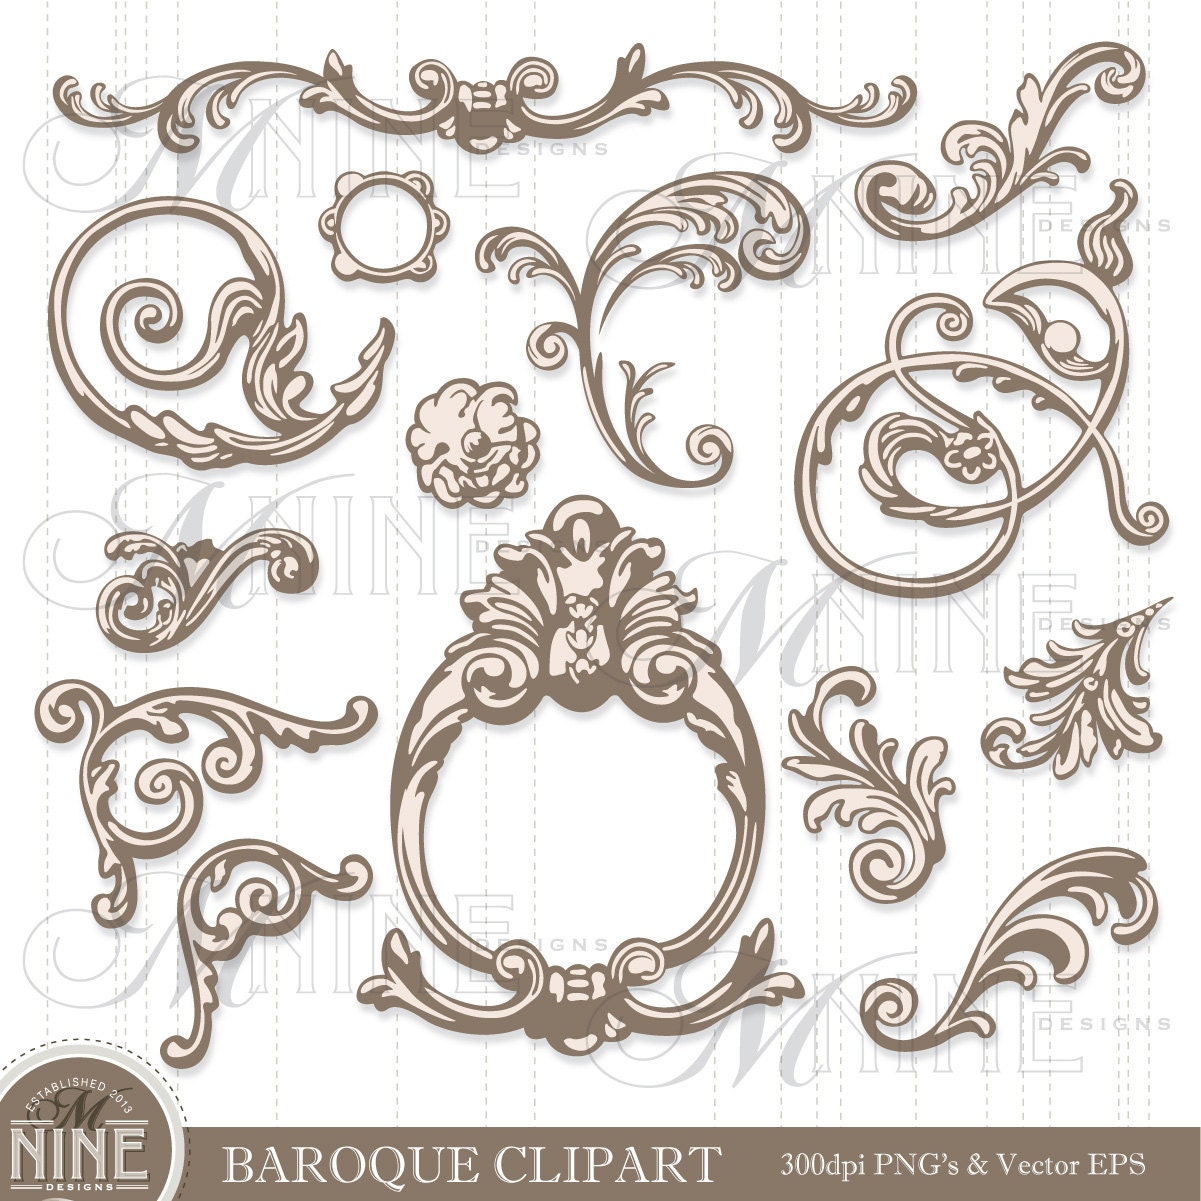 Baroque ornaments clipart digital clip art instant for Baroque design elements